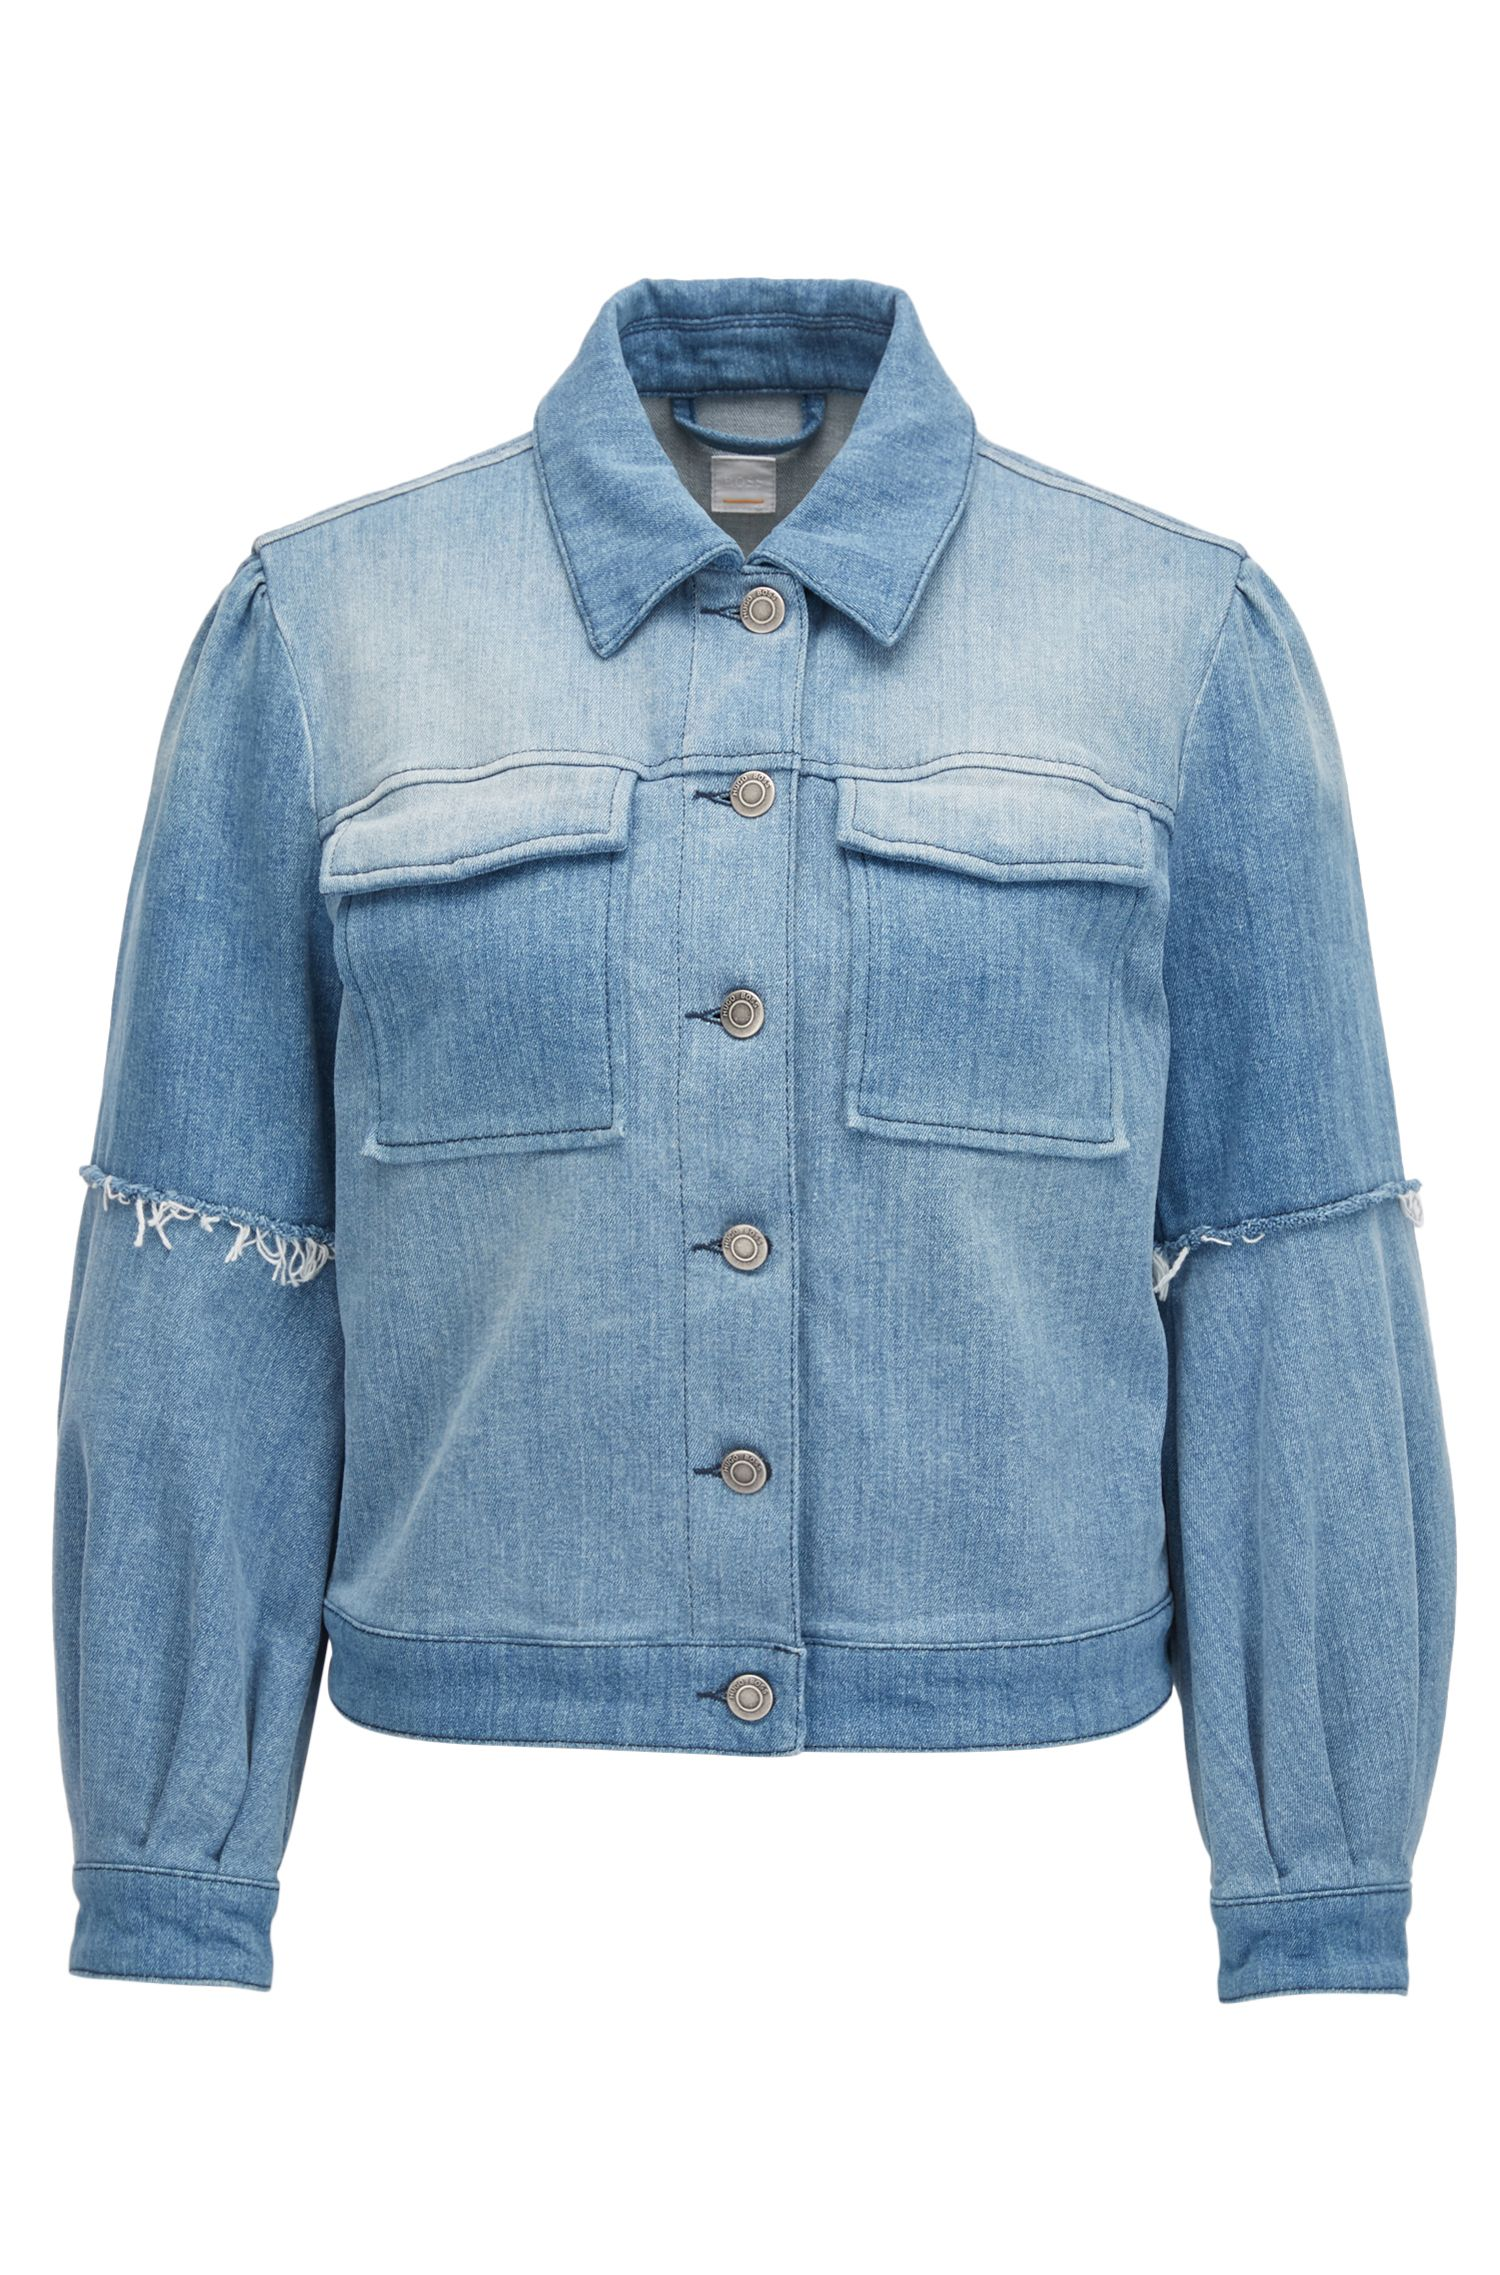 Pleated jacket in Italian stretch denim